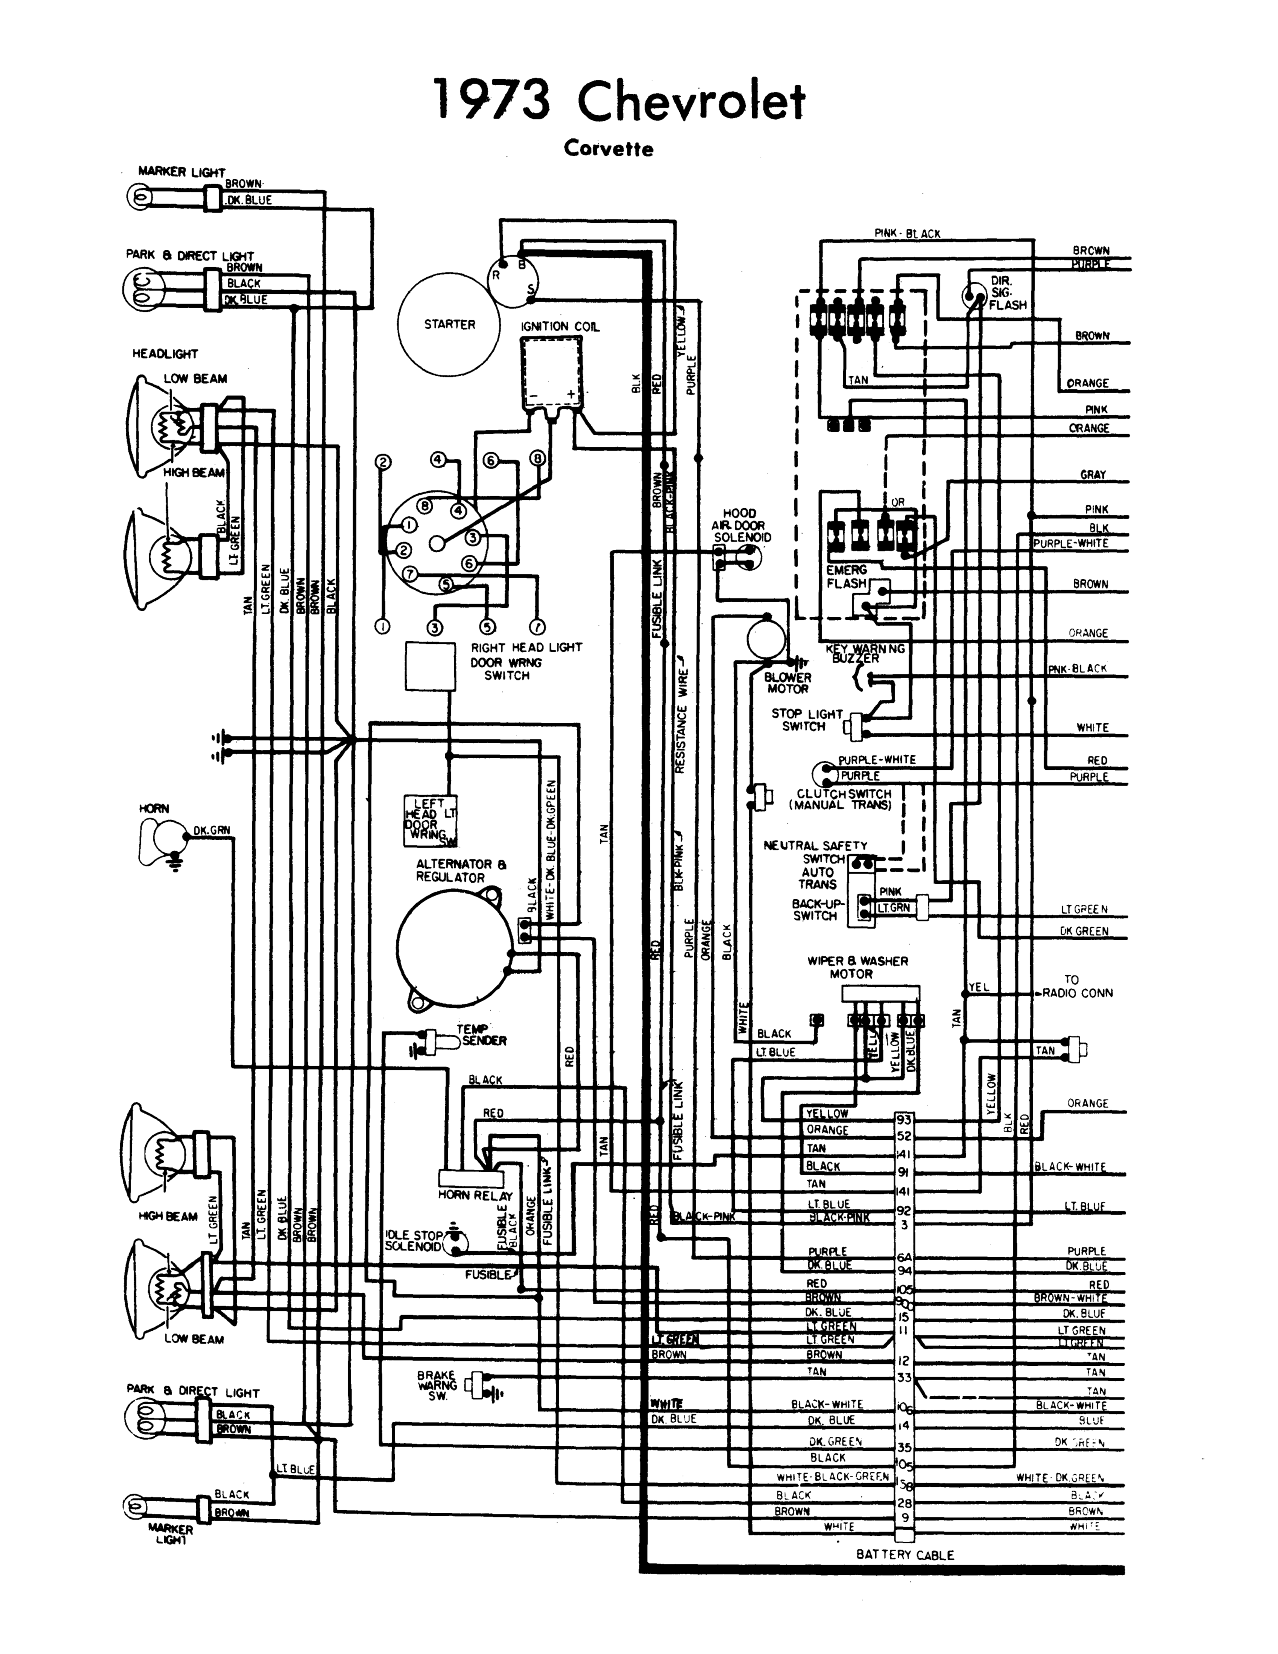 wiring diagram 1973 corvette | Chevy Corvette 1973 Wiring